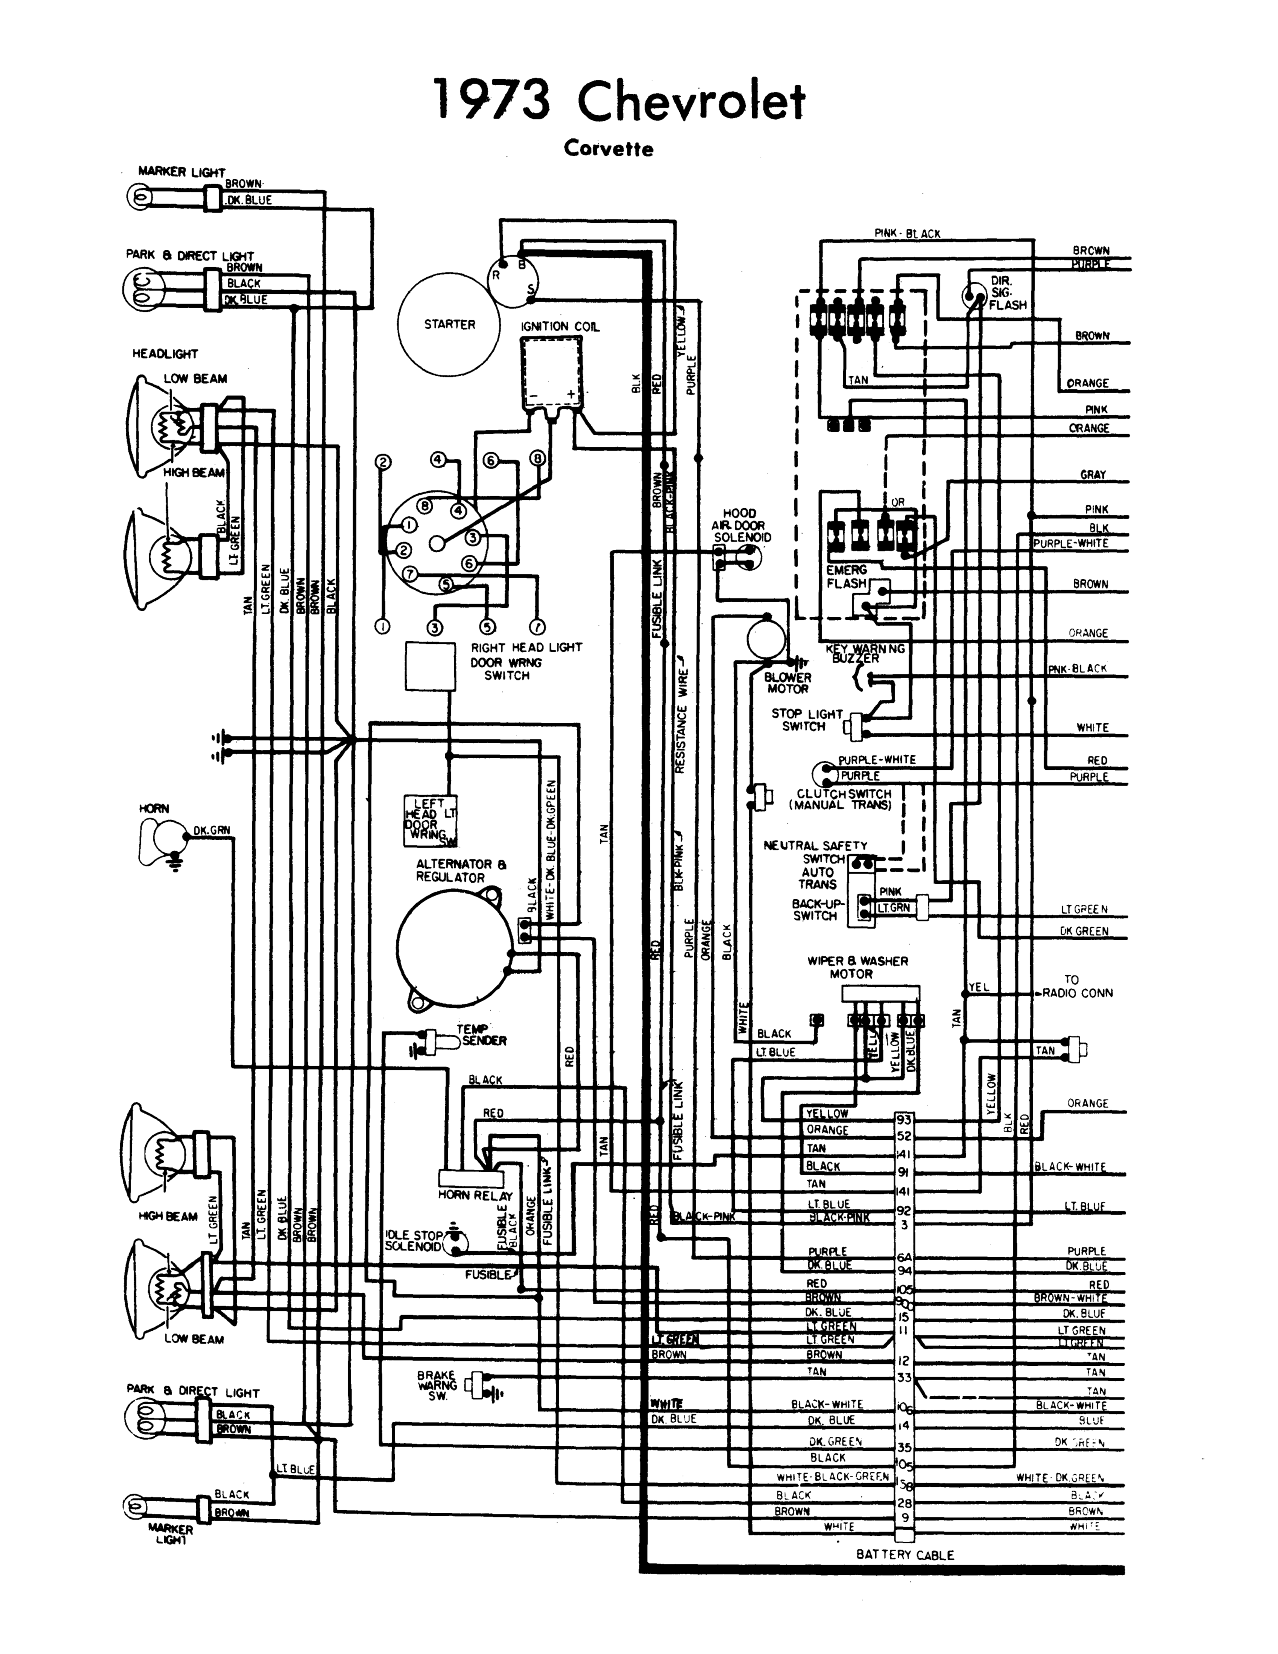 wiring diagram 1973 corvette | Chevy Corvette 1973 Wiring